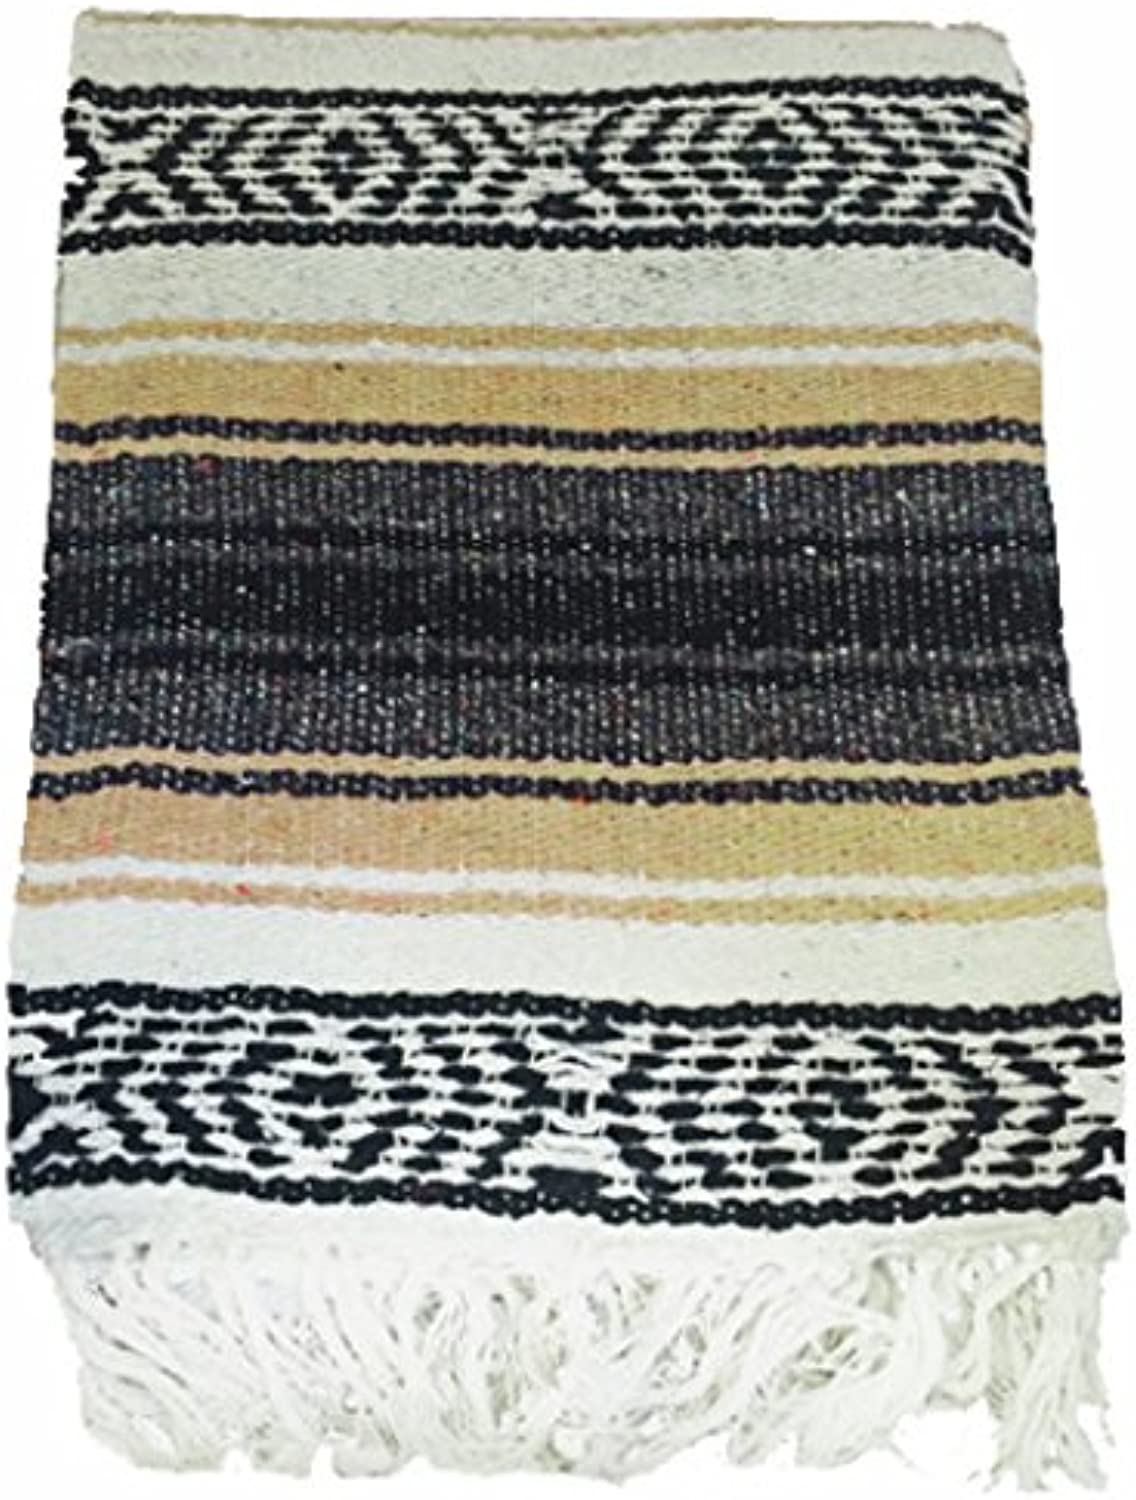 (Sand) - El Molcajete Brand Traditional Mexican Blanket Serape For Yoga, Beach, Picnic, Stadium or Dogs Bed